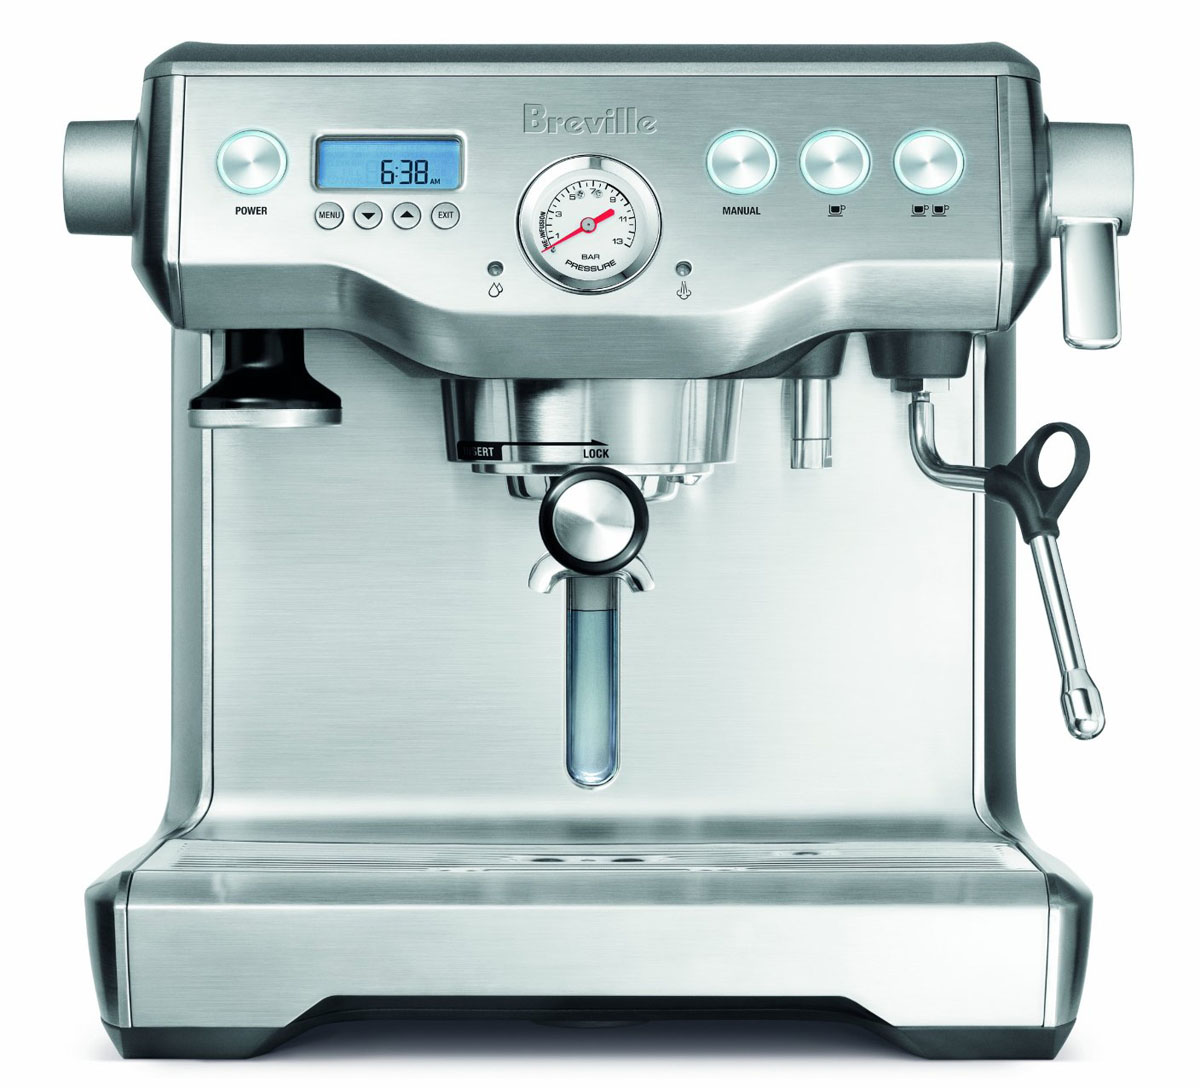 Breville Stainless Steel Espresso Machine